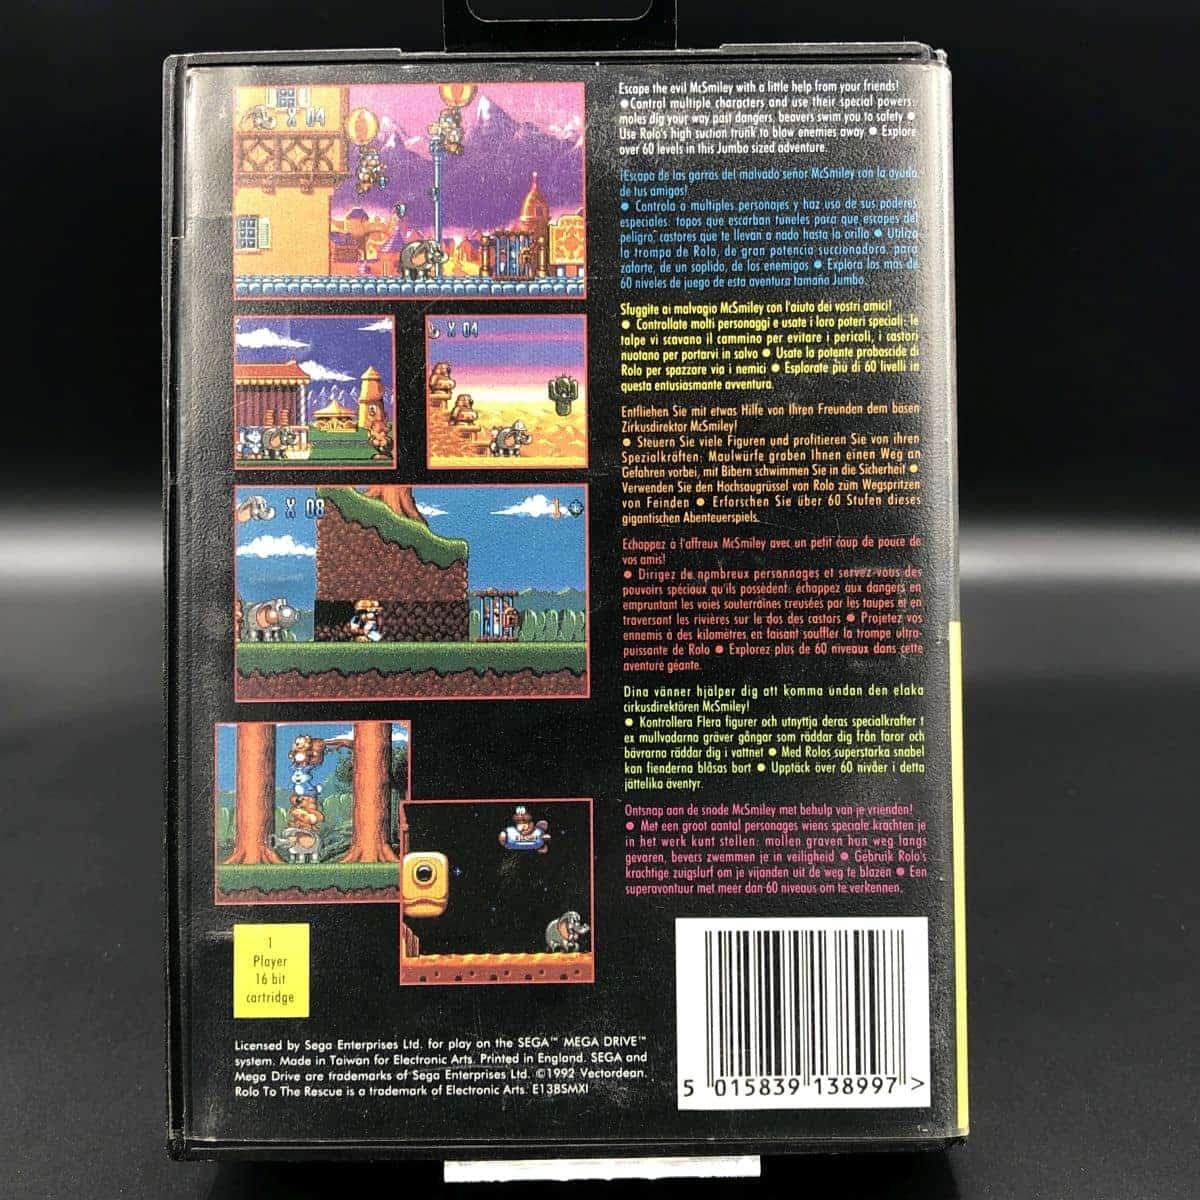 Rolo to the Rescue (ohne Anleitung) (Sehr gut) Sega Mega Drive